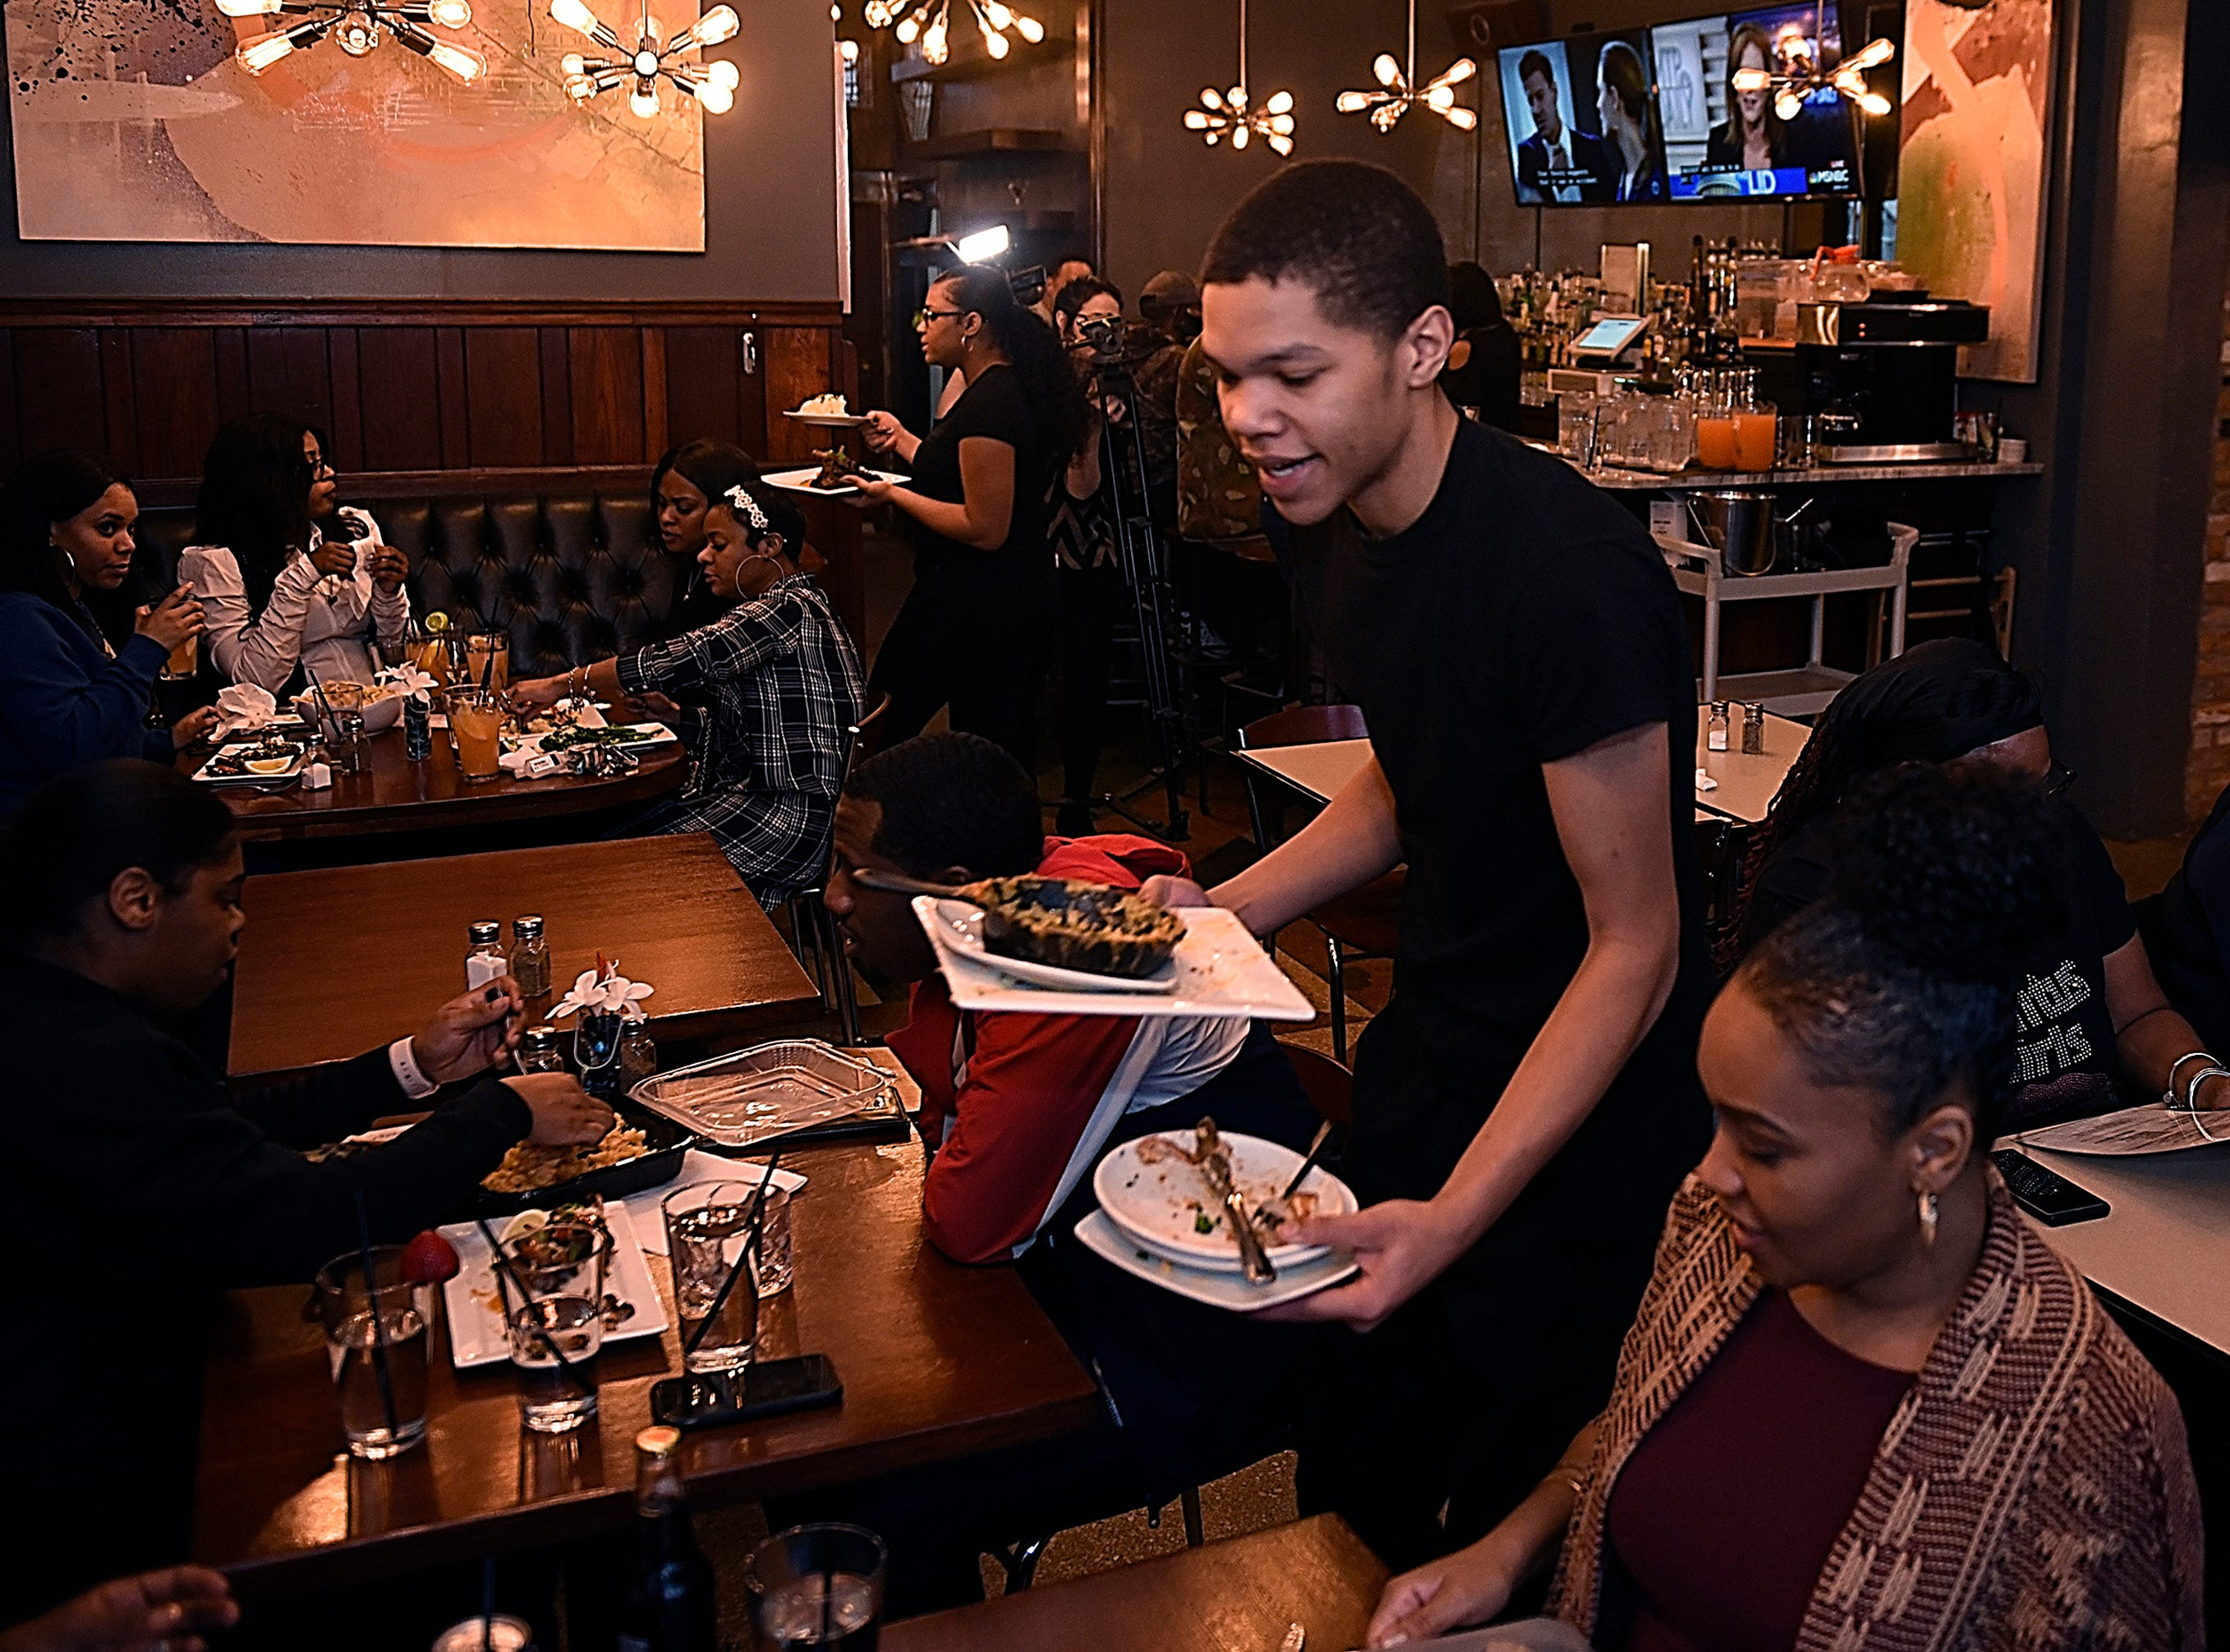 Server, Jordan Sumler, 18, serves dinner plates to customers.